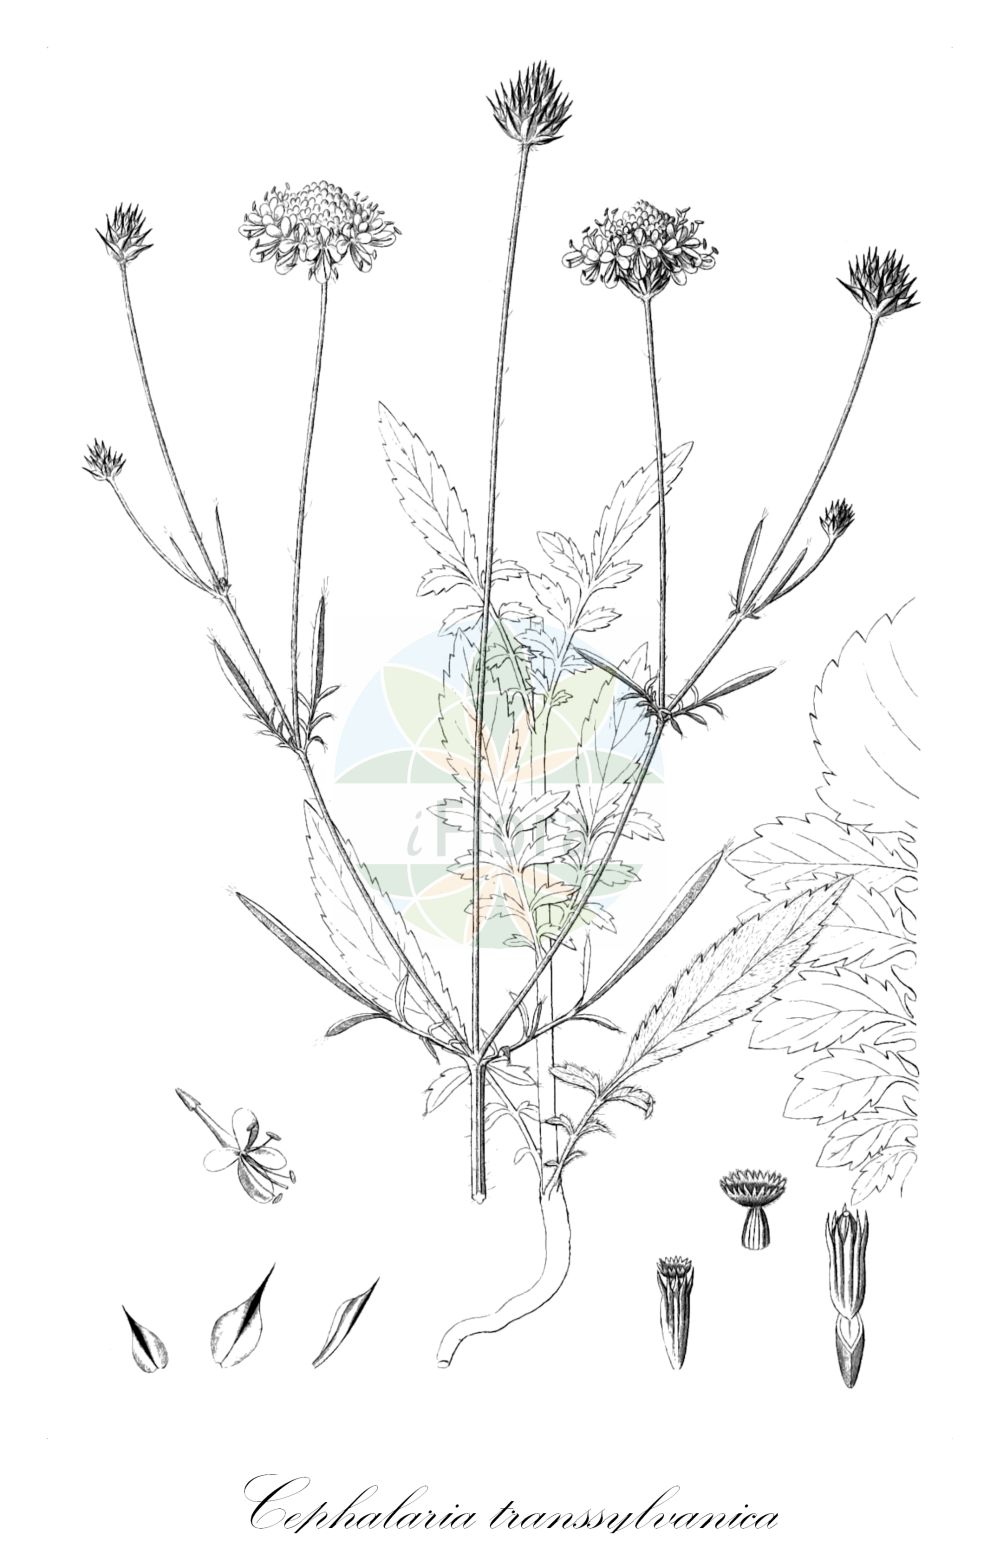 Historische Abbildung von Cephalaria transsylvanica. Das Bild zeigt Blatt, Bluete, Frucht und Same. ---- Historical Drawing of Cephalaria transsylvanica.The image is showing leaf, flower, fruit and seed.(Cephalaria transsylvanica,Cephalaria allionii,,Cephalaria,Caprifoliaceae,Geissblattgewaechse,Honeysuckle family,Blatt,Bluete,Frucht,Same,leaf,flower,fruit,seed,Reichenbach (1823-1832))